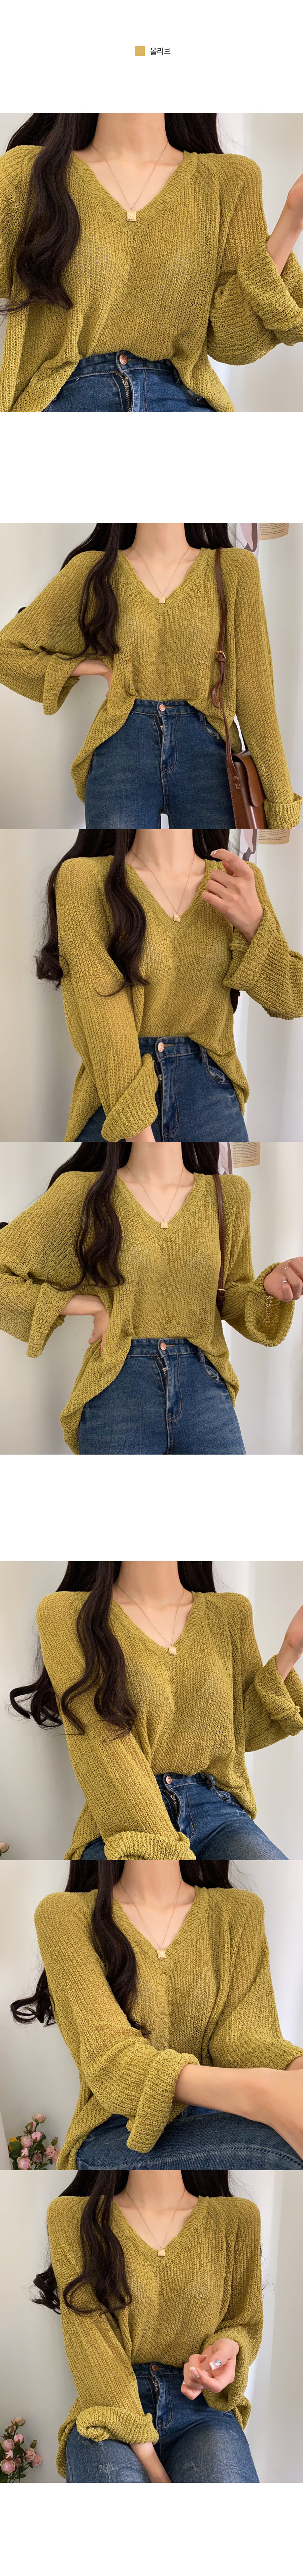 Baby Book Loose-fit Fit Knitwear